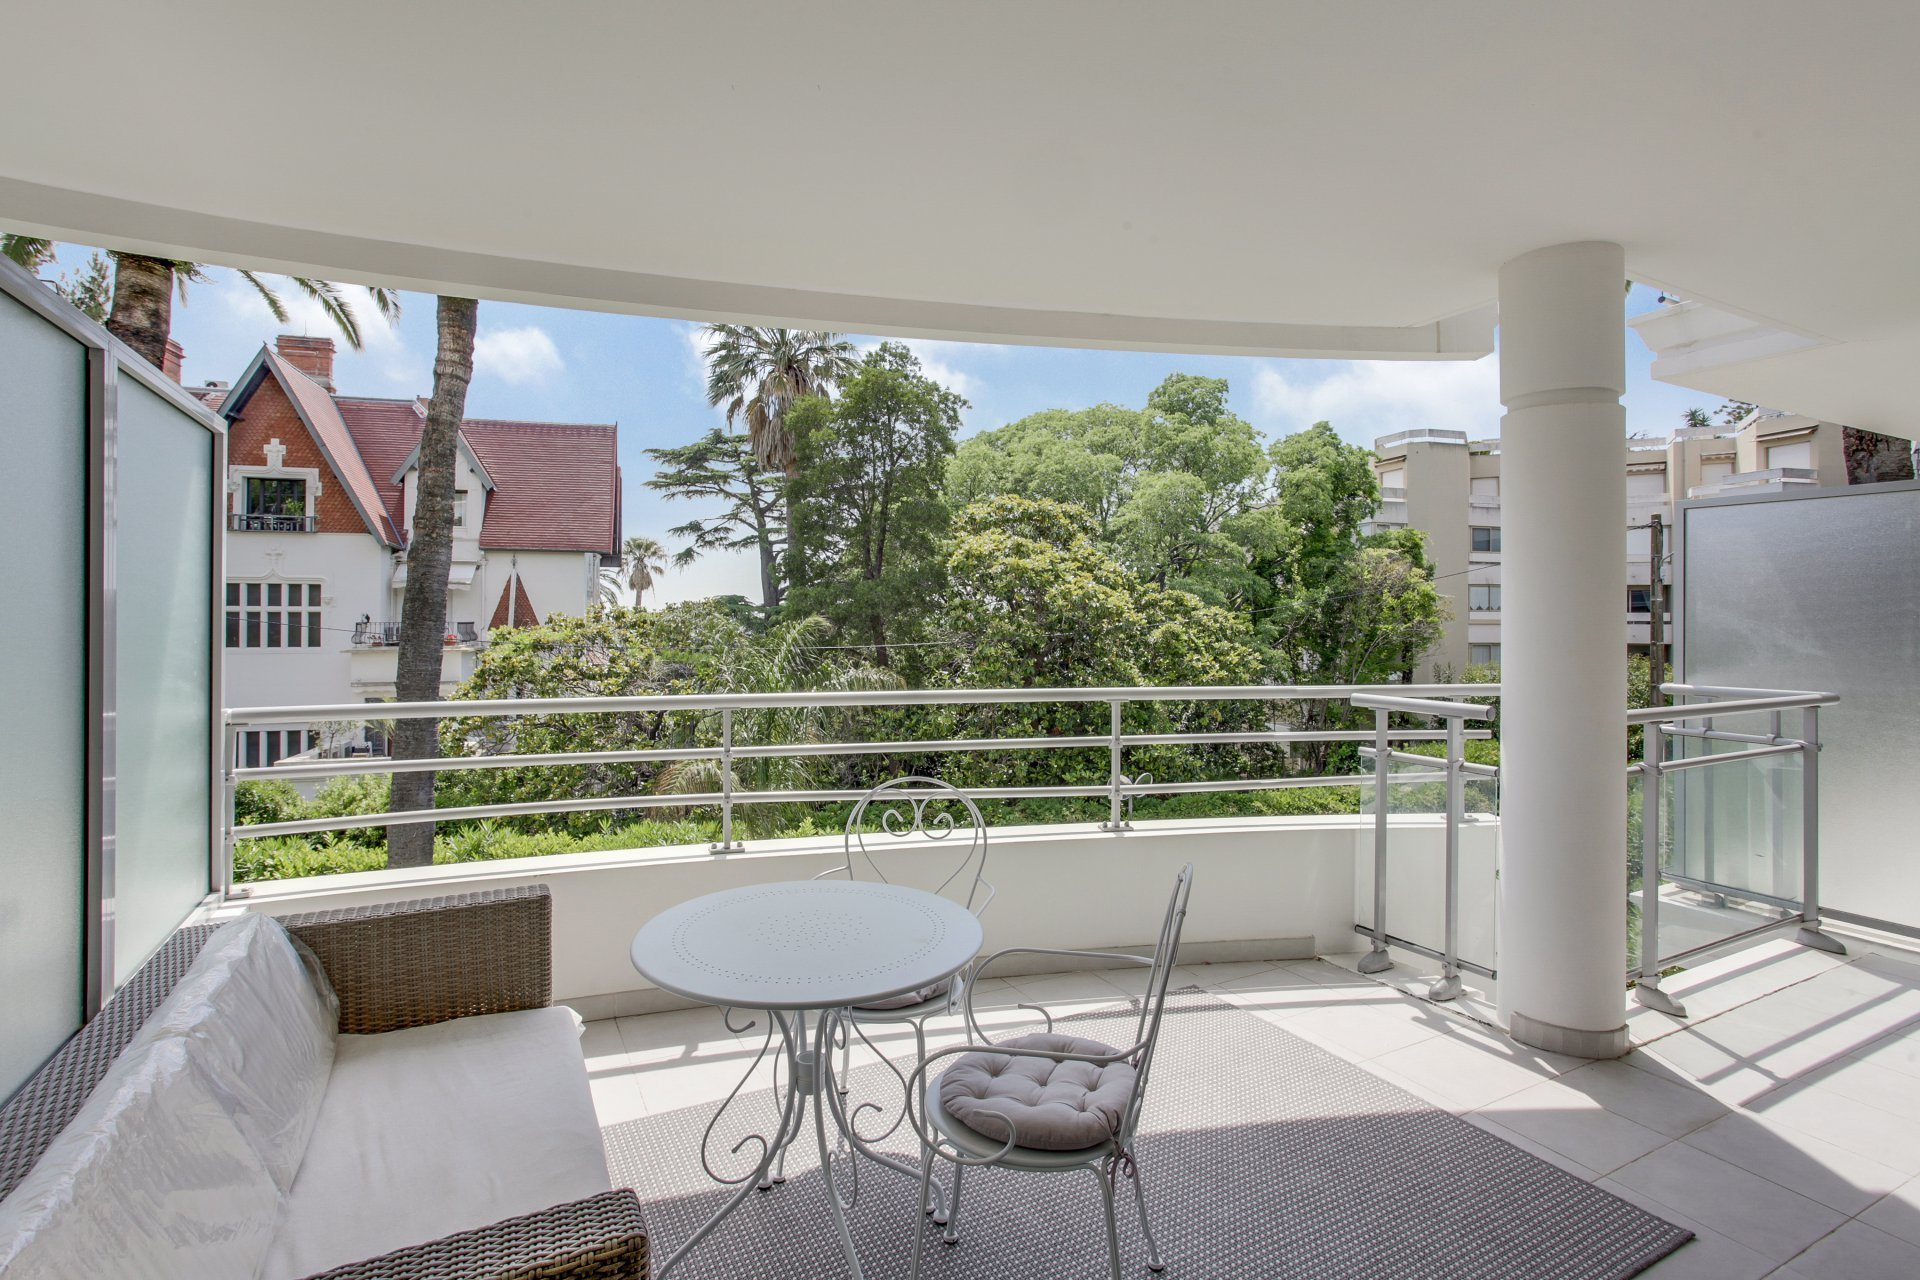 Modern 1 bedroom apartment with terrace and garage in wonderful Cannes Californie